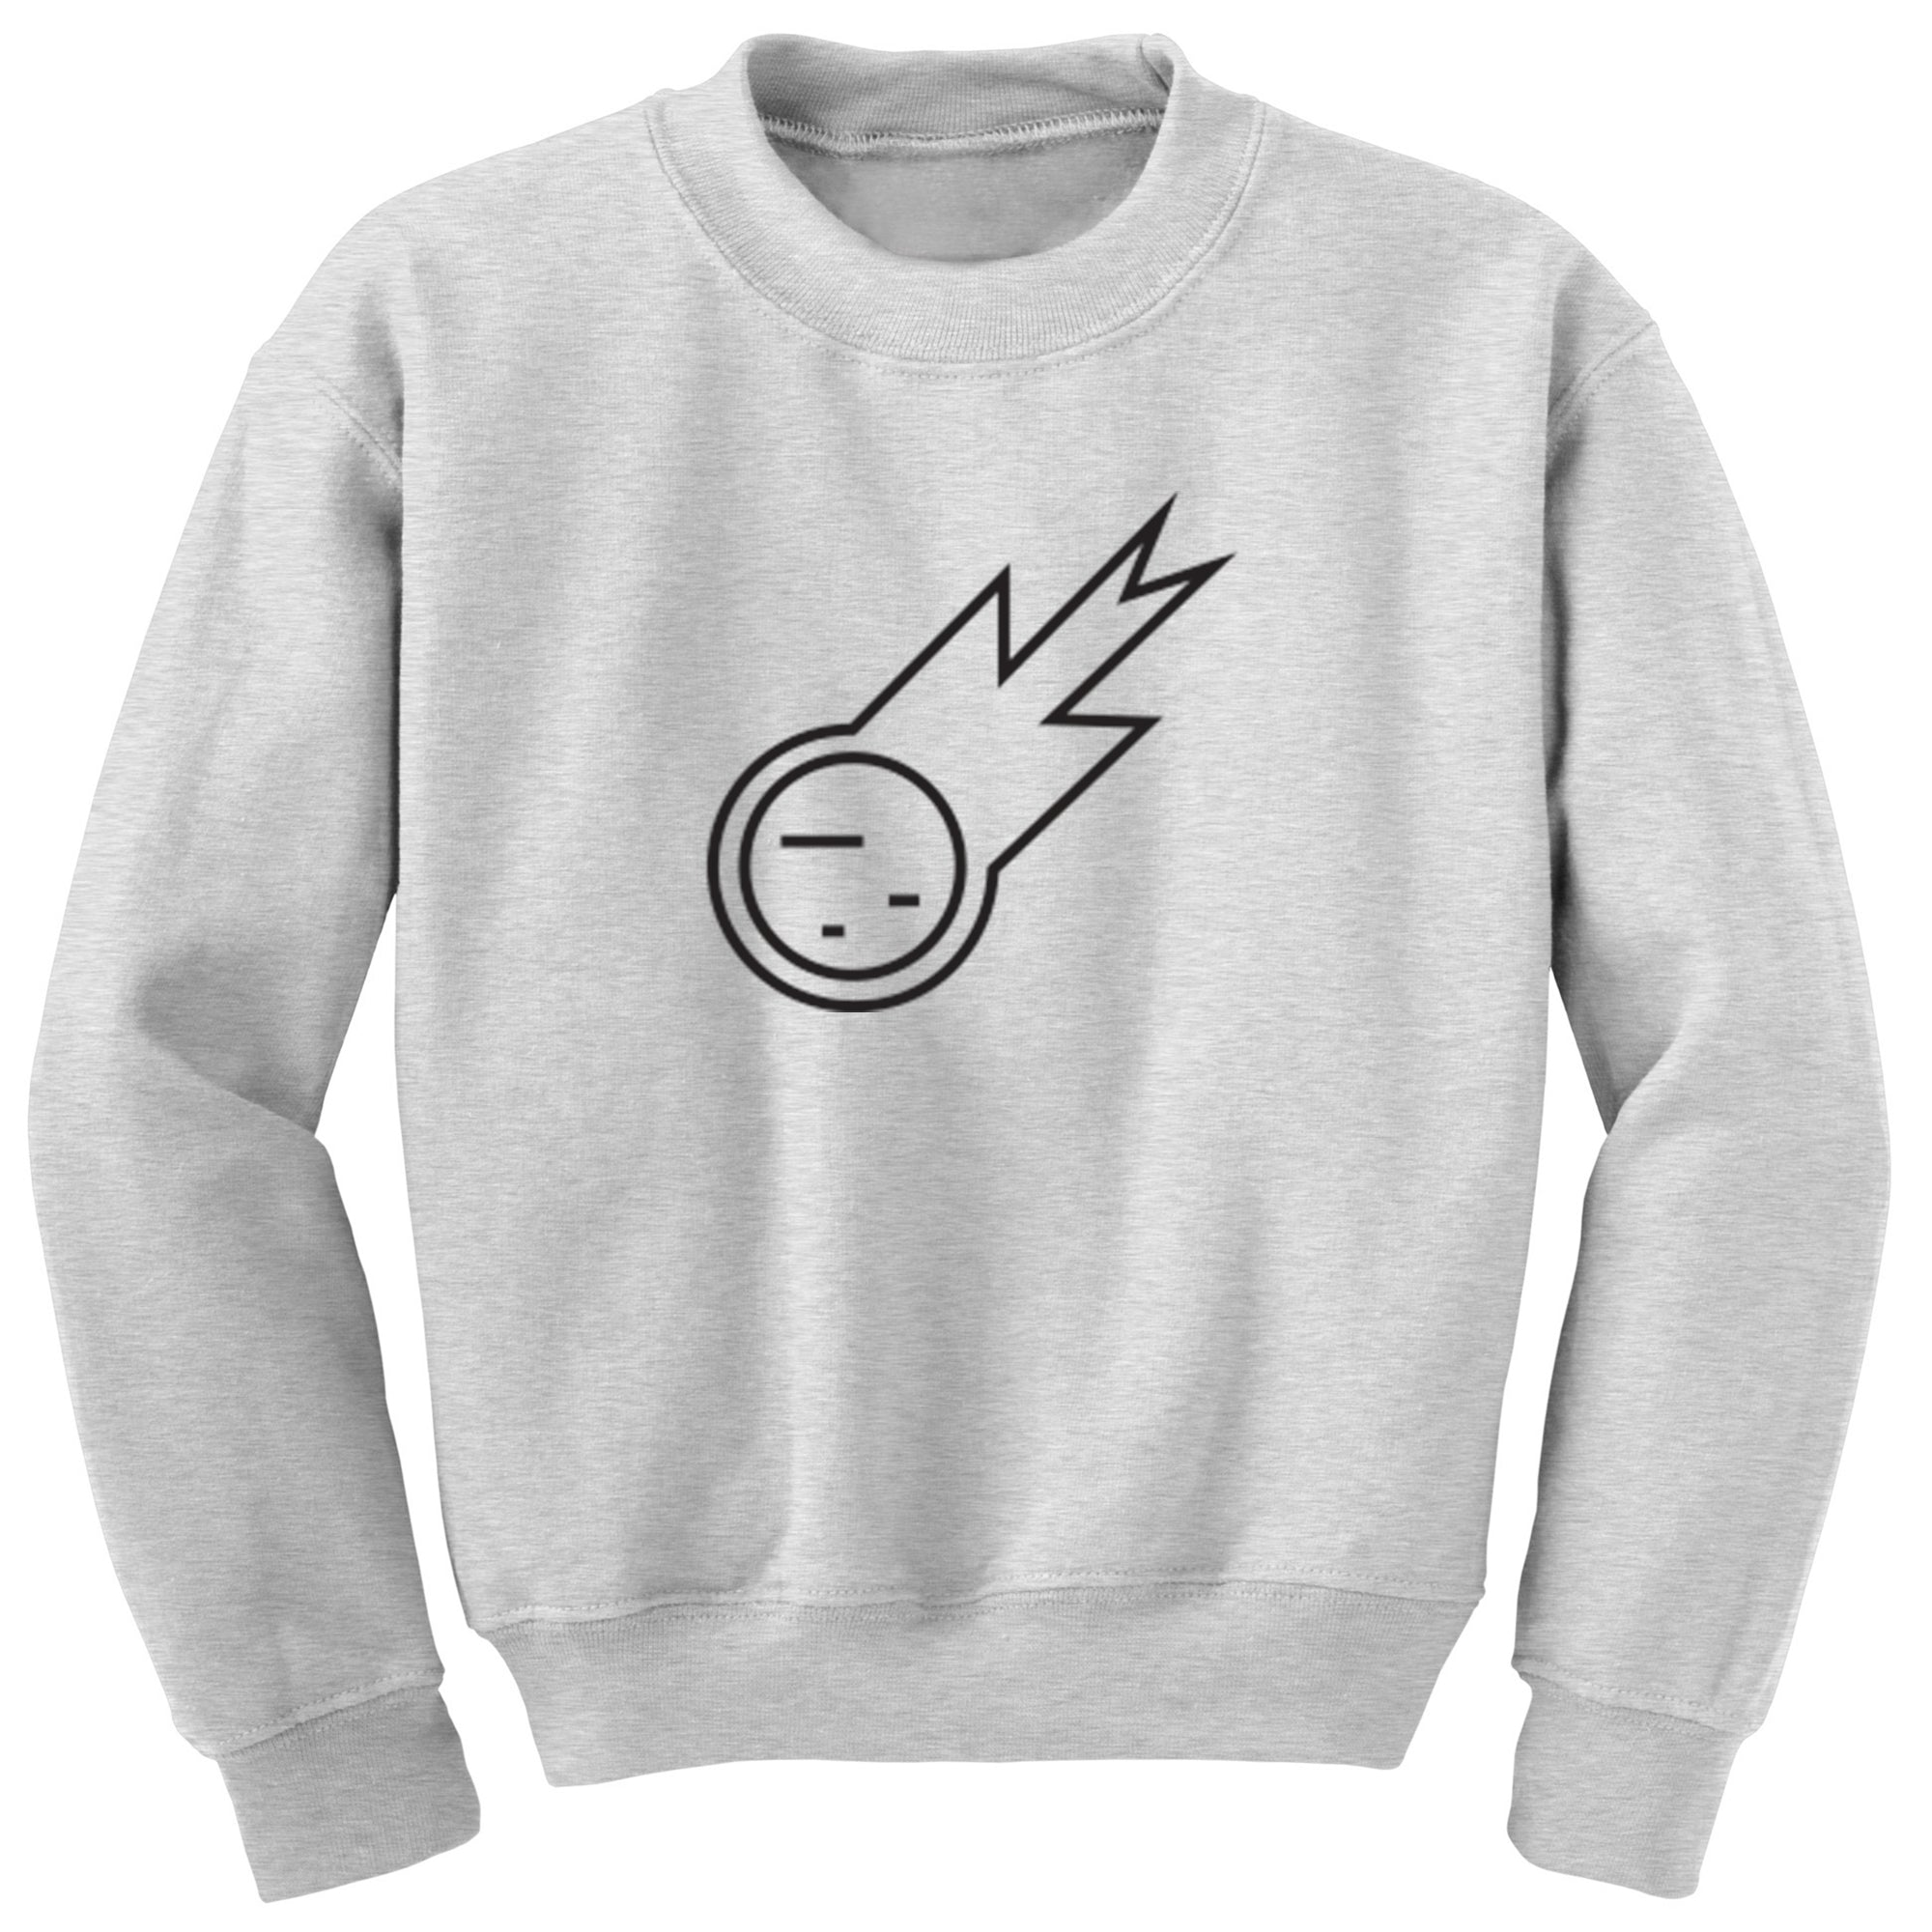 Asteroid Childrens Ages 3/4-12/14 Unisex Jumper S0355 - Illustrated Identity Ltd.